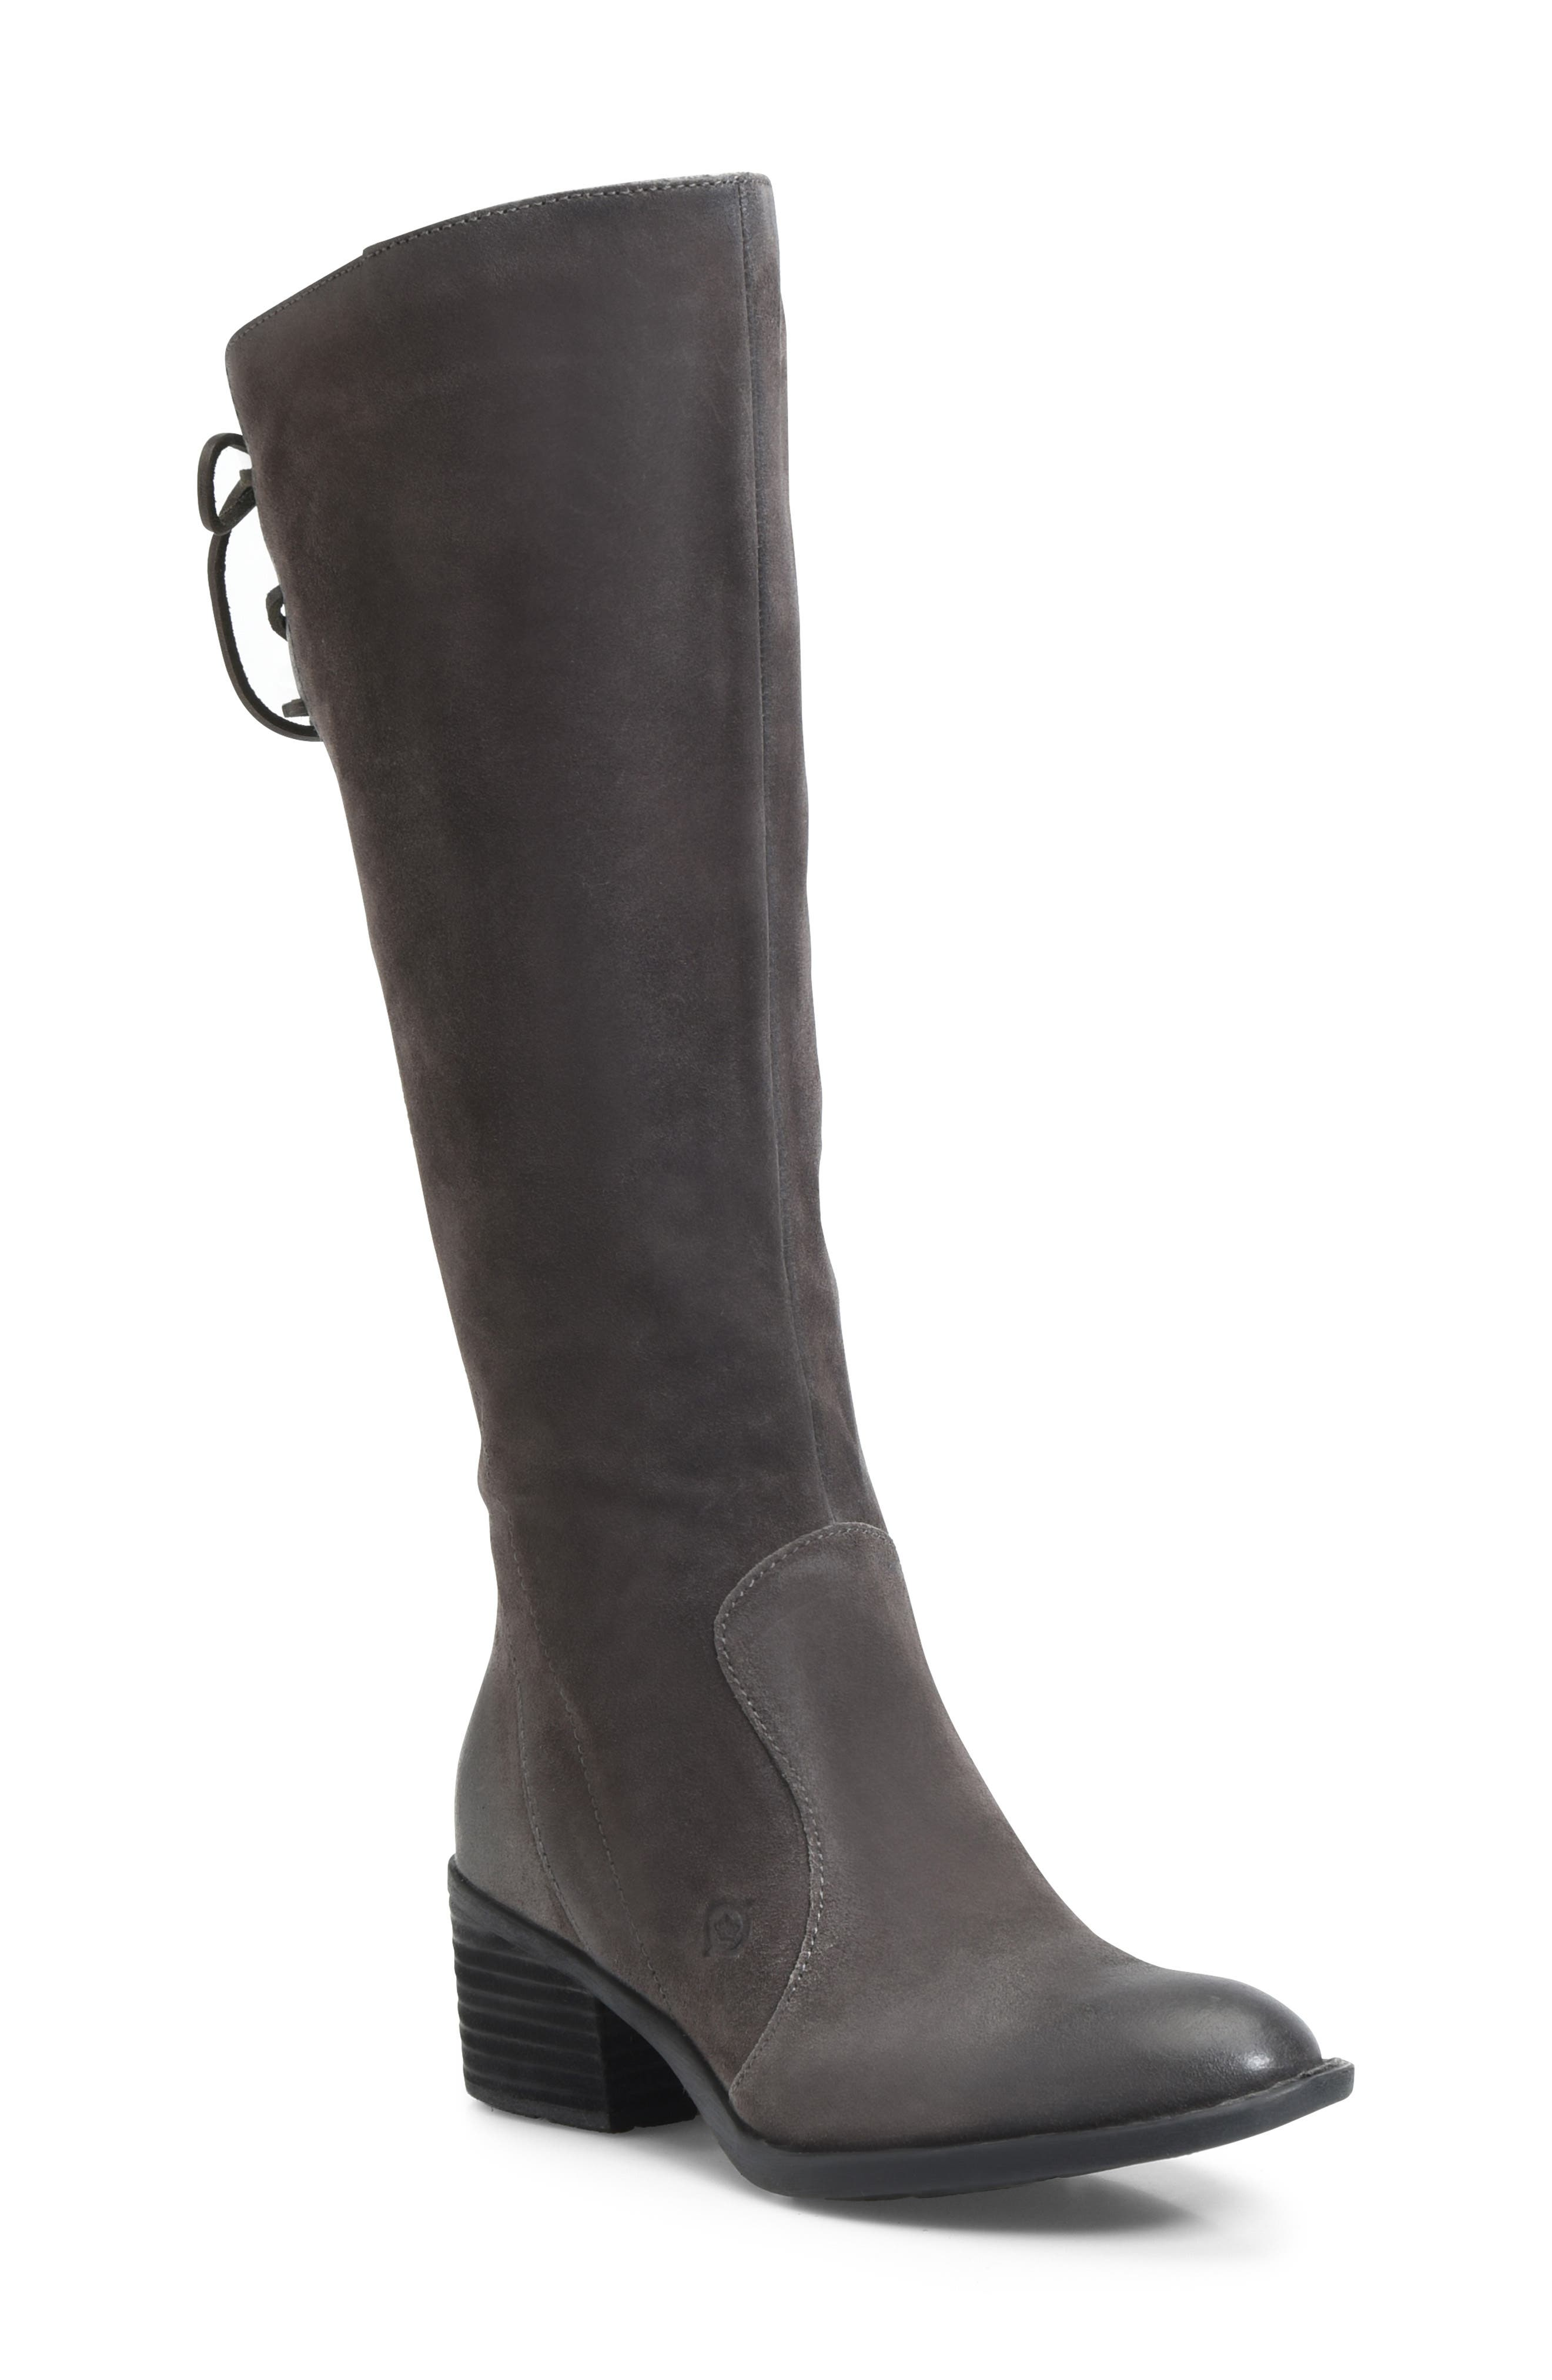 Felicia Knee High Boot,                         Main,                         color, 021